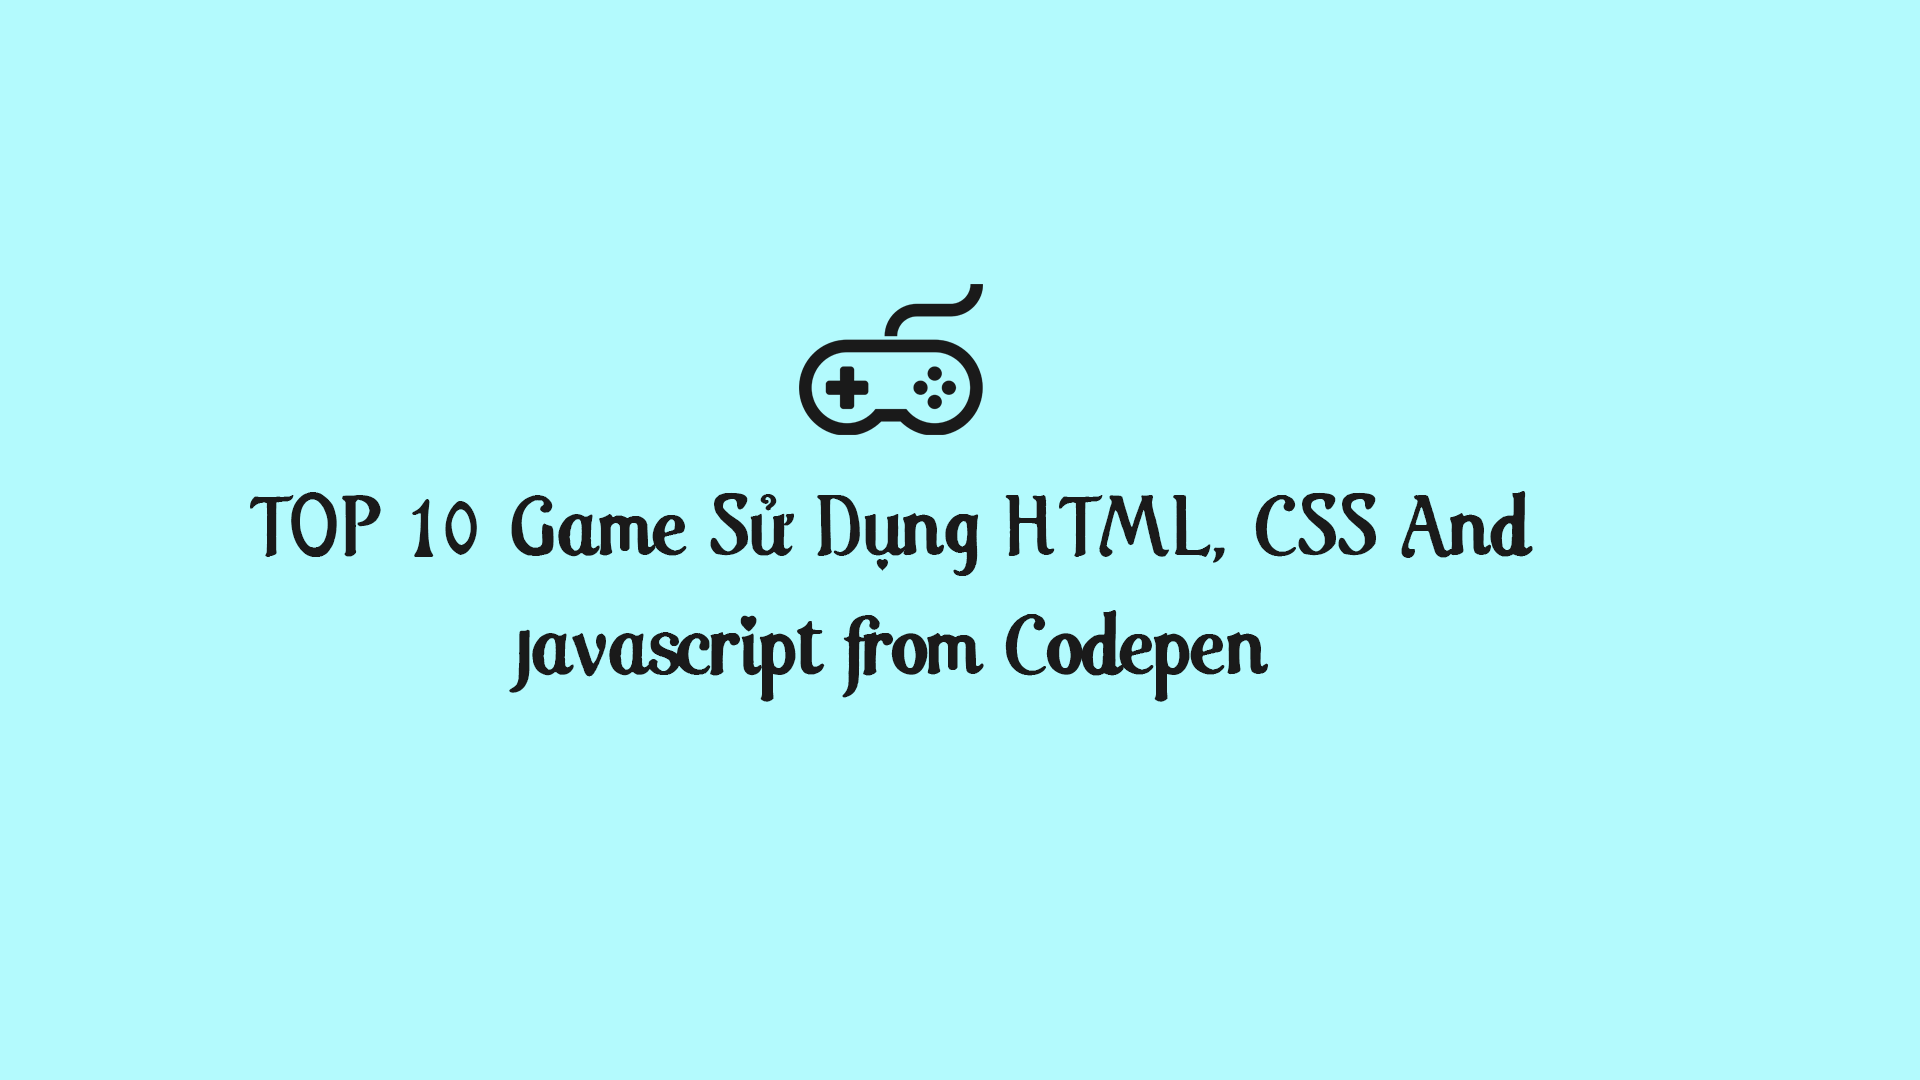 TOP 10 Game Sử Dụng HTML, CSS And Javascript from Codepen